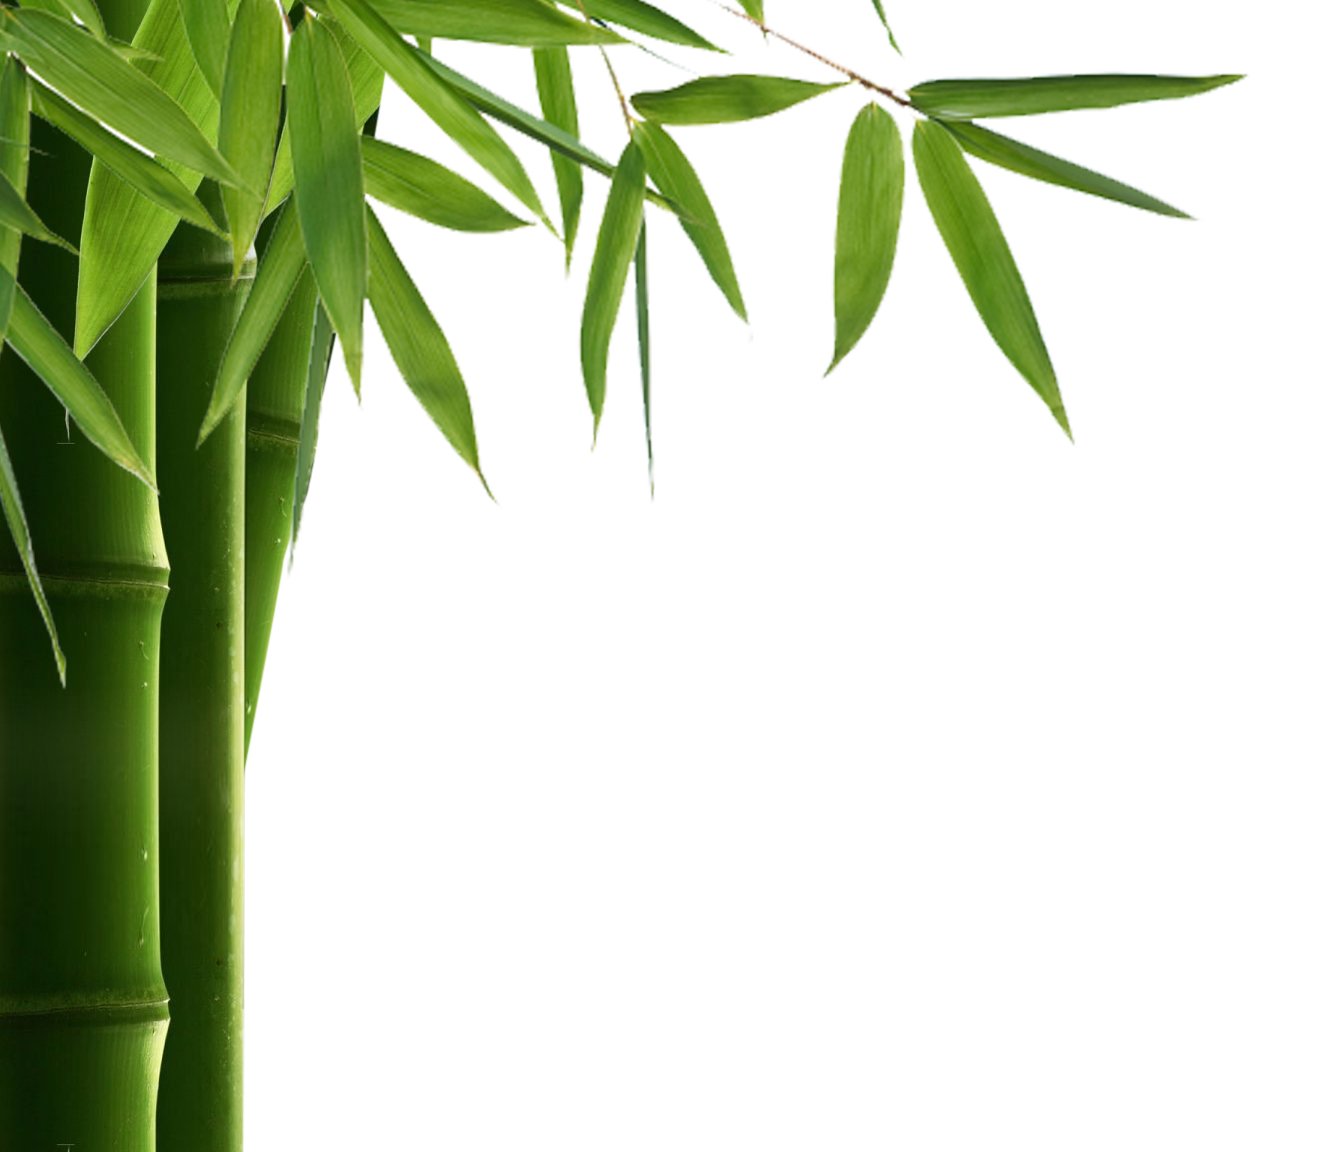 bamboo png hd transparent bamboo hd images. | pluspng